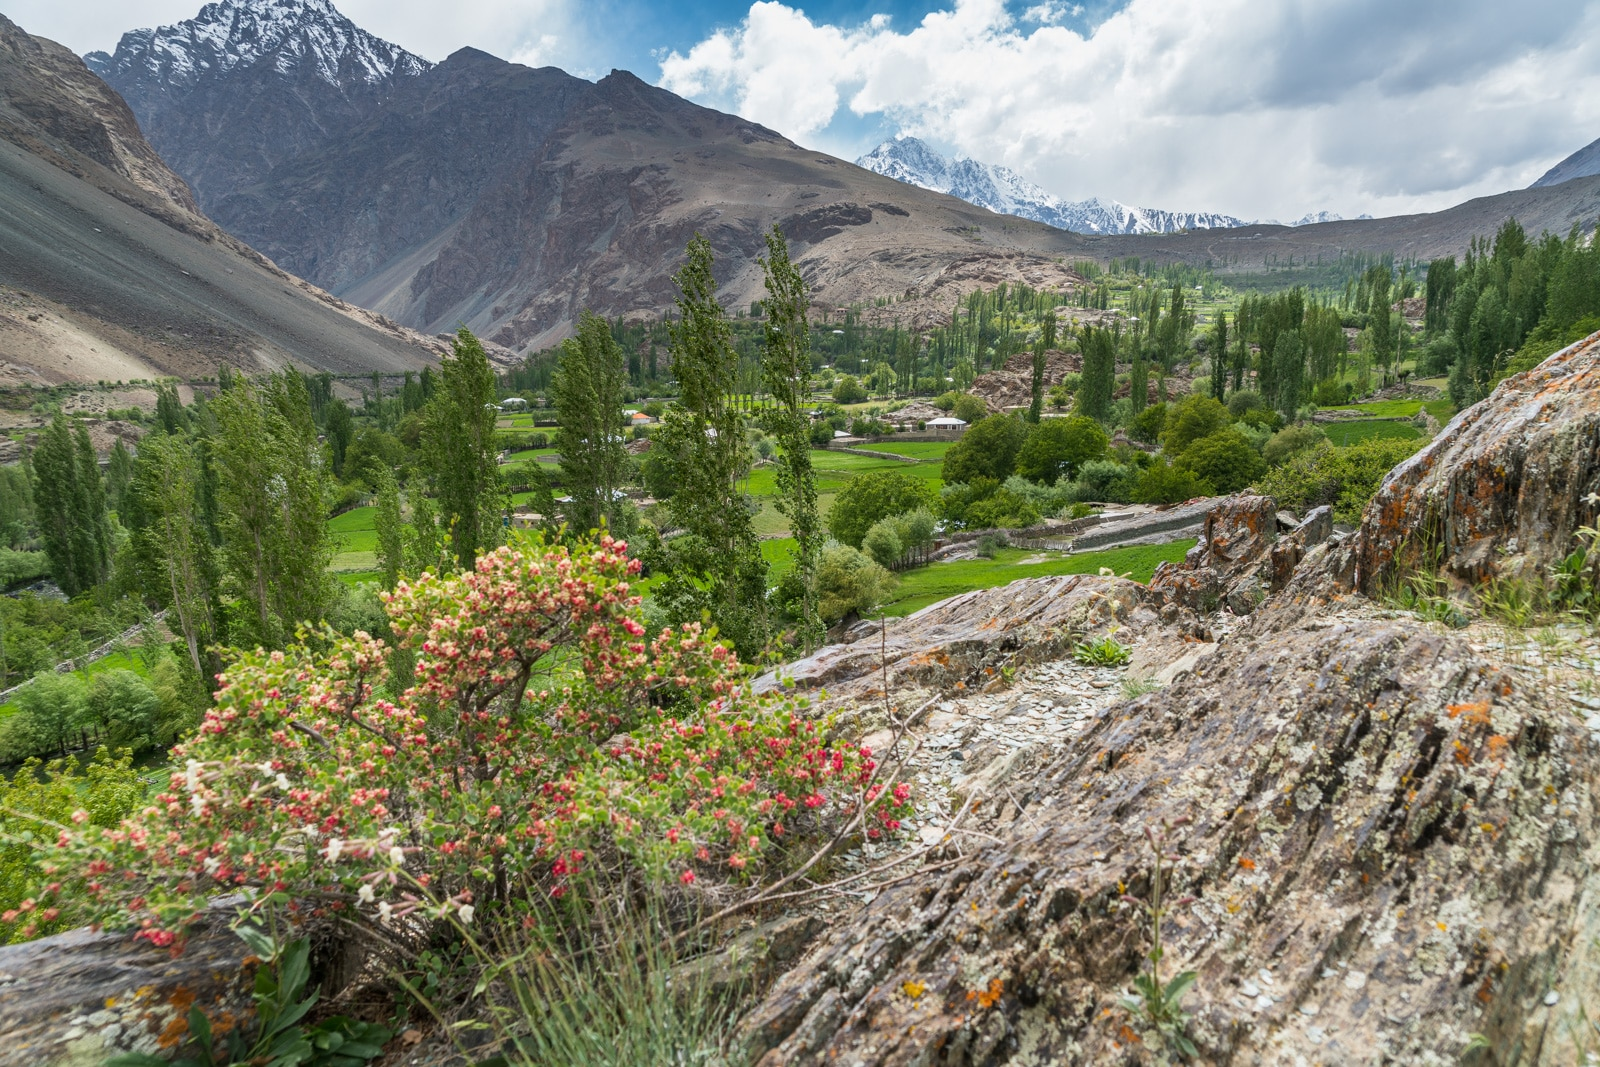 Phander Valley travel guide - Wildflowers on a hill overlooking the village - Lost With Purpose travel blog